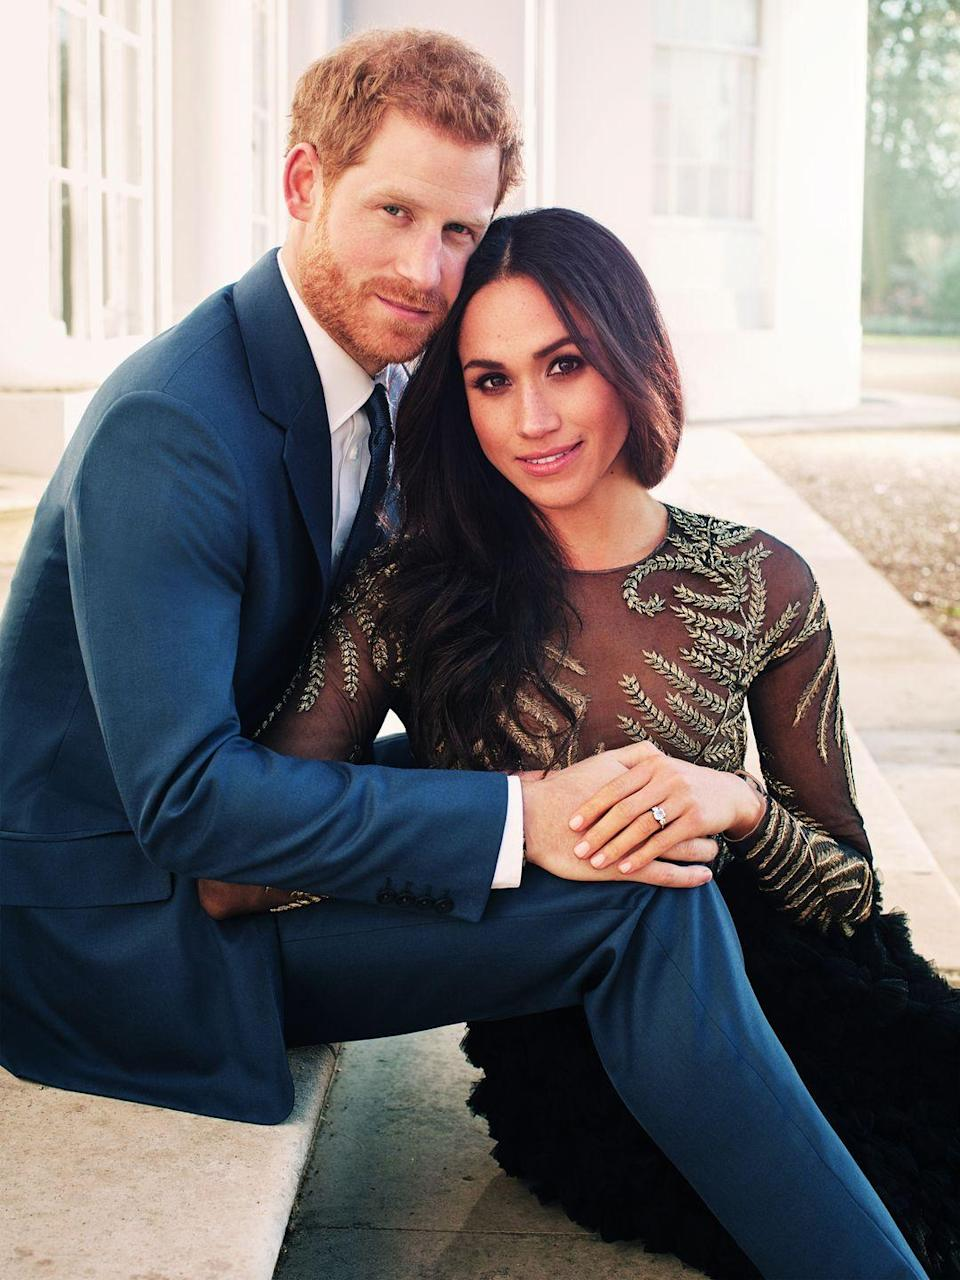 """<p>In December, Harry and Meghan released their official engagement photos of themselves perched on the steps of the private royal residence, situated in the grounds of Windsor Castle where he will marry his fiancée in May 2018. Meghan wore a couture AW16 gown by British label <a class=""""link rapid-noclick-resp"""" href=""""https://ralphandrusso.com/"""" rel=""""nofollow noopener"""" target=""""_blank"""" data-ylk=""""slk:Ralph & Russo"""">Ralph & Russo</a> that cost an estimated £56,000.</p>"""